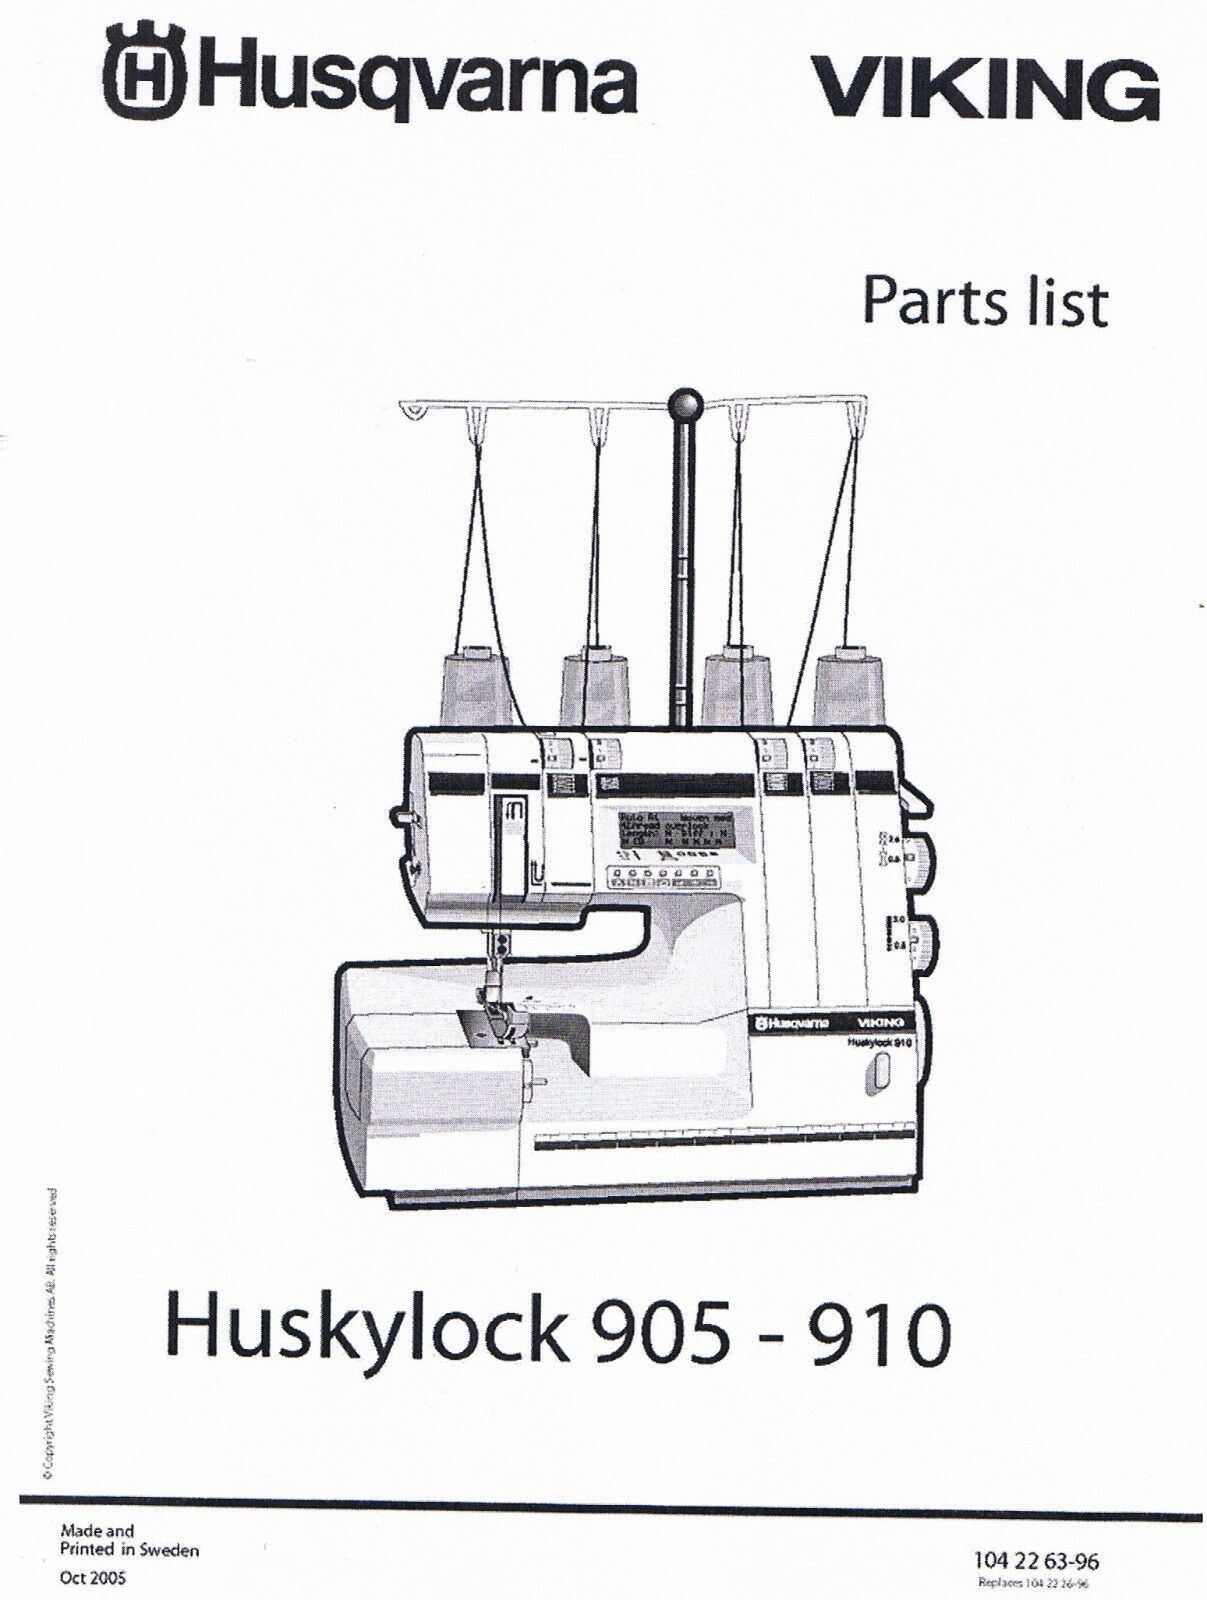 Husqvarna Viking Huskylock 905 910 Serger Overlock Service Repair Manual +  Parts 1 of 7Only 4 available ...